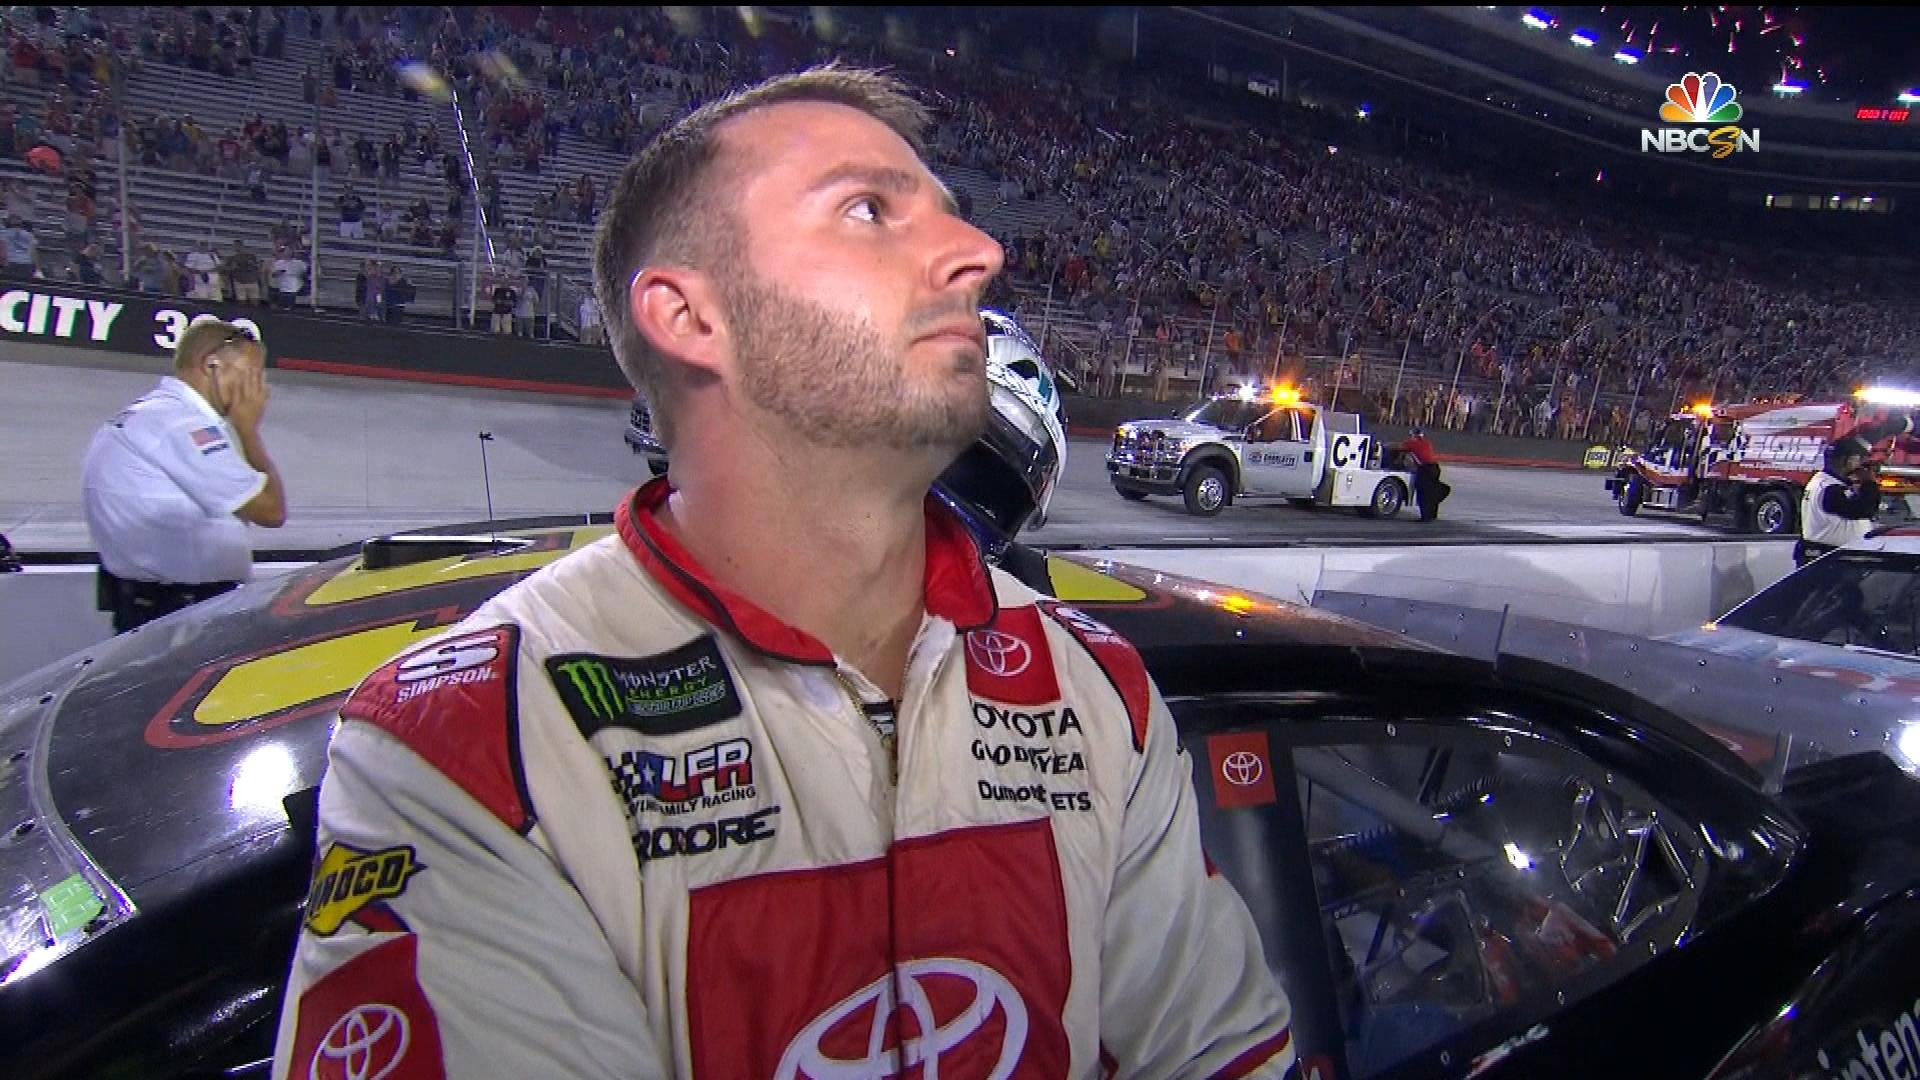 Matt DiBenedetto overcome by emotion after runner-up finish at Bristol